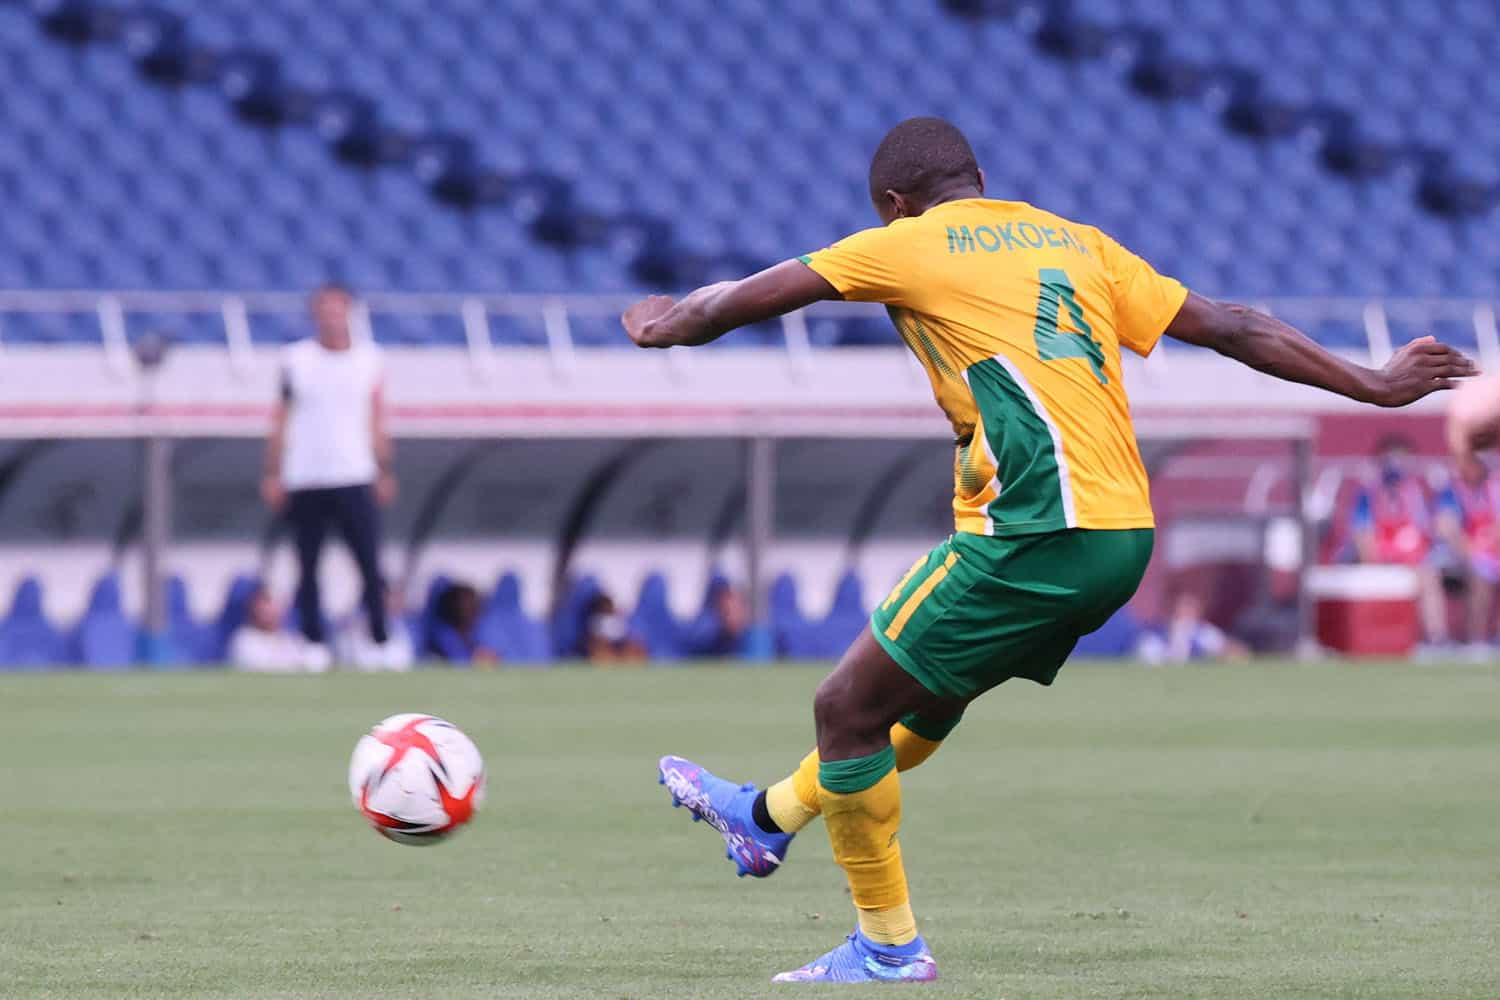 South Africa's midfielder Teboho Mokoena shoots to score the third goal during the Tokyo 2020 Olympic Games men's group A first round football match between France and South Africa at Saitama Stadium in Saitama on July 25, 2021. (Photo by Ayaka Naito / AFP)